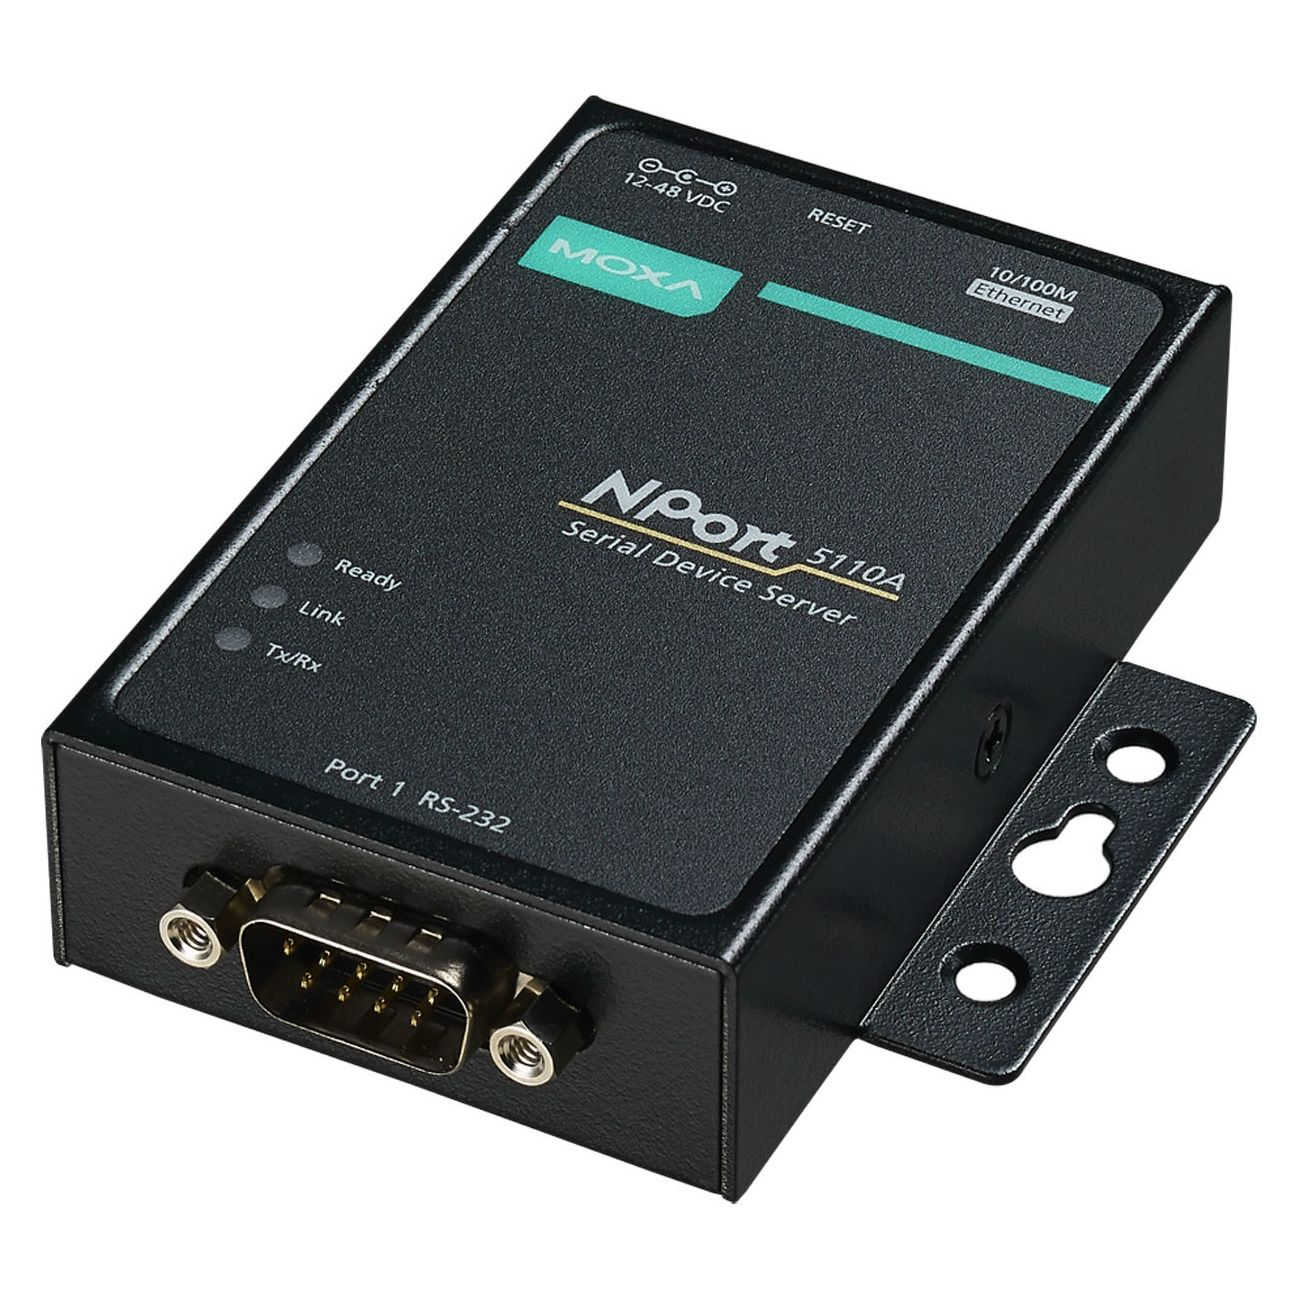 NPort 5110A-T